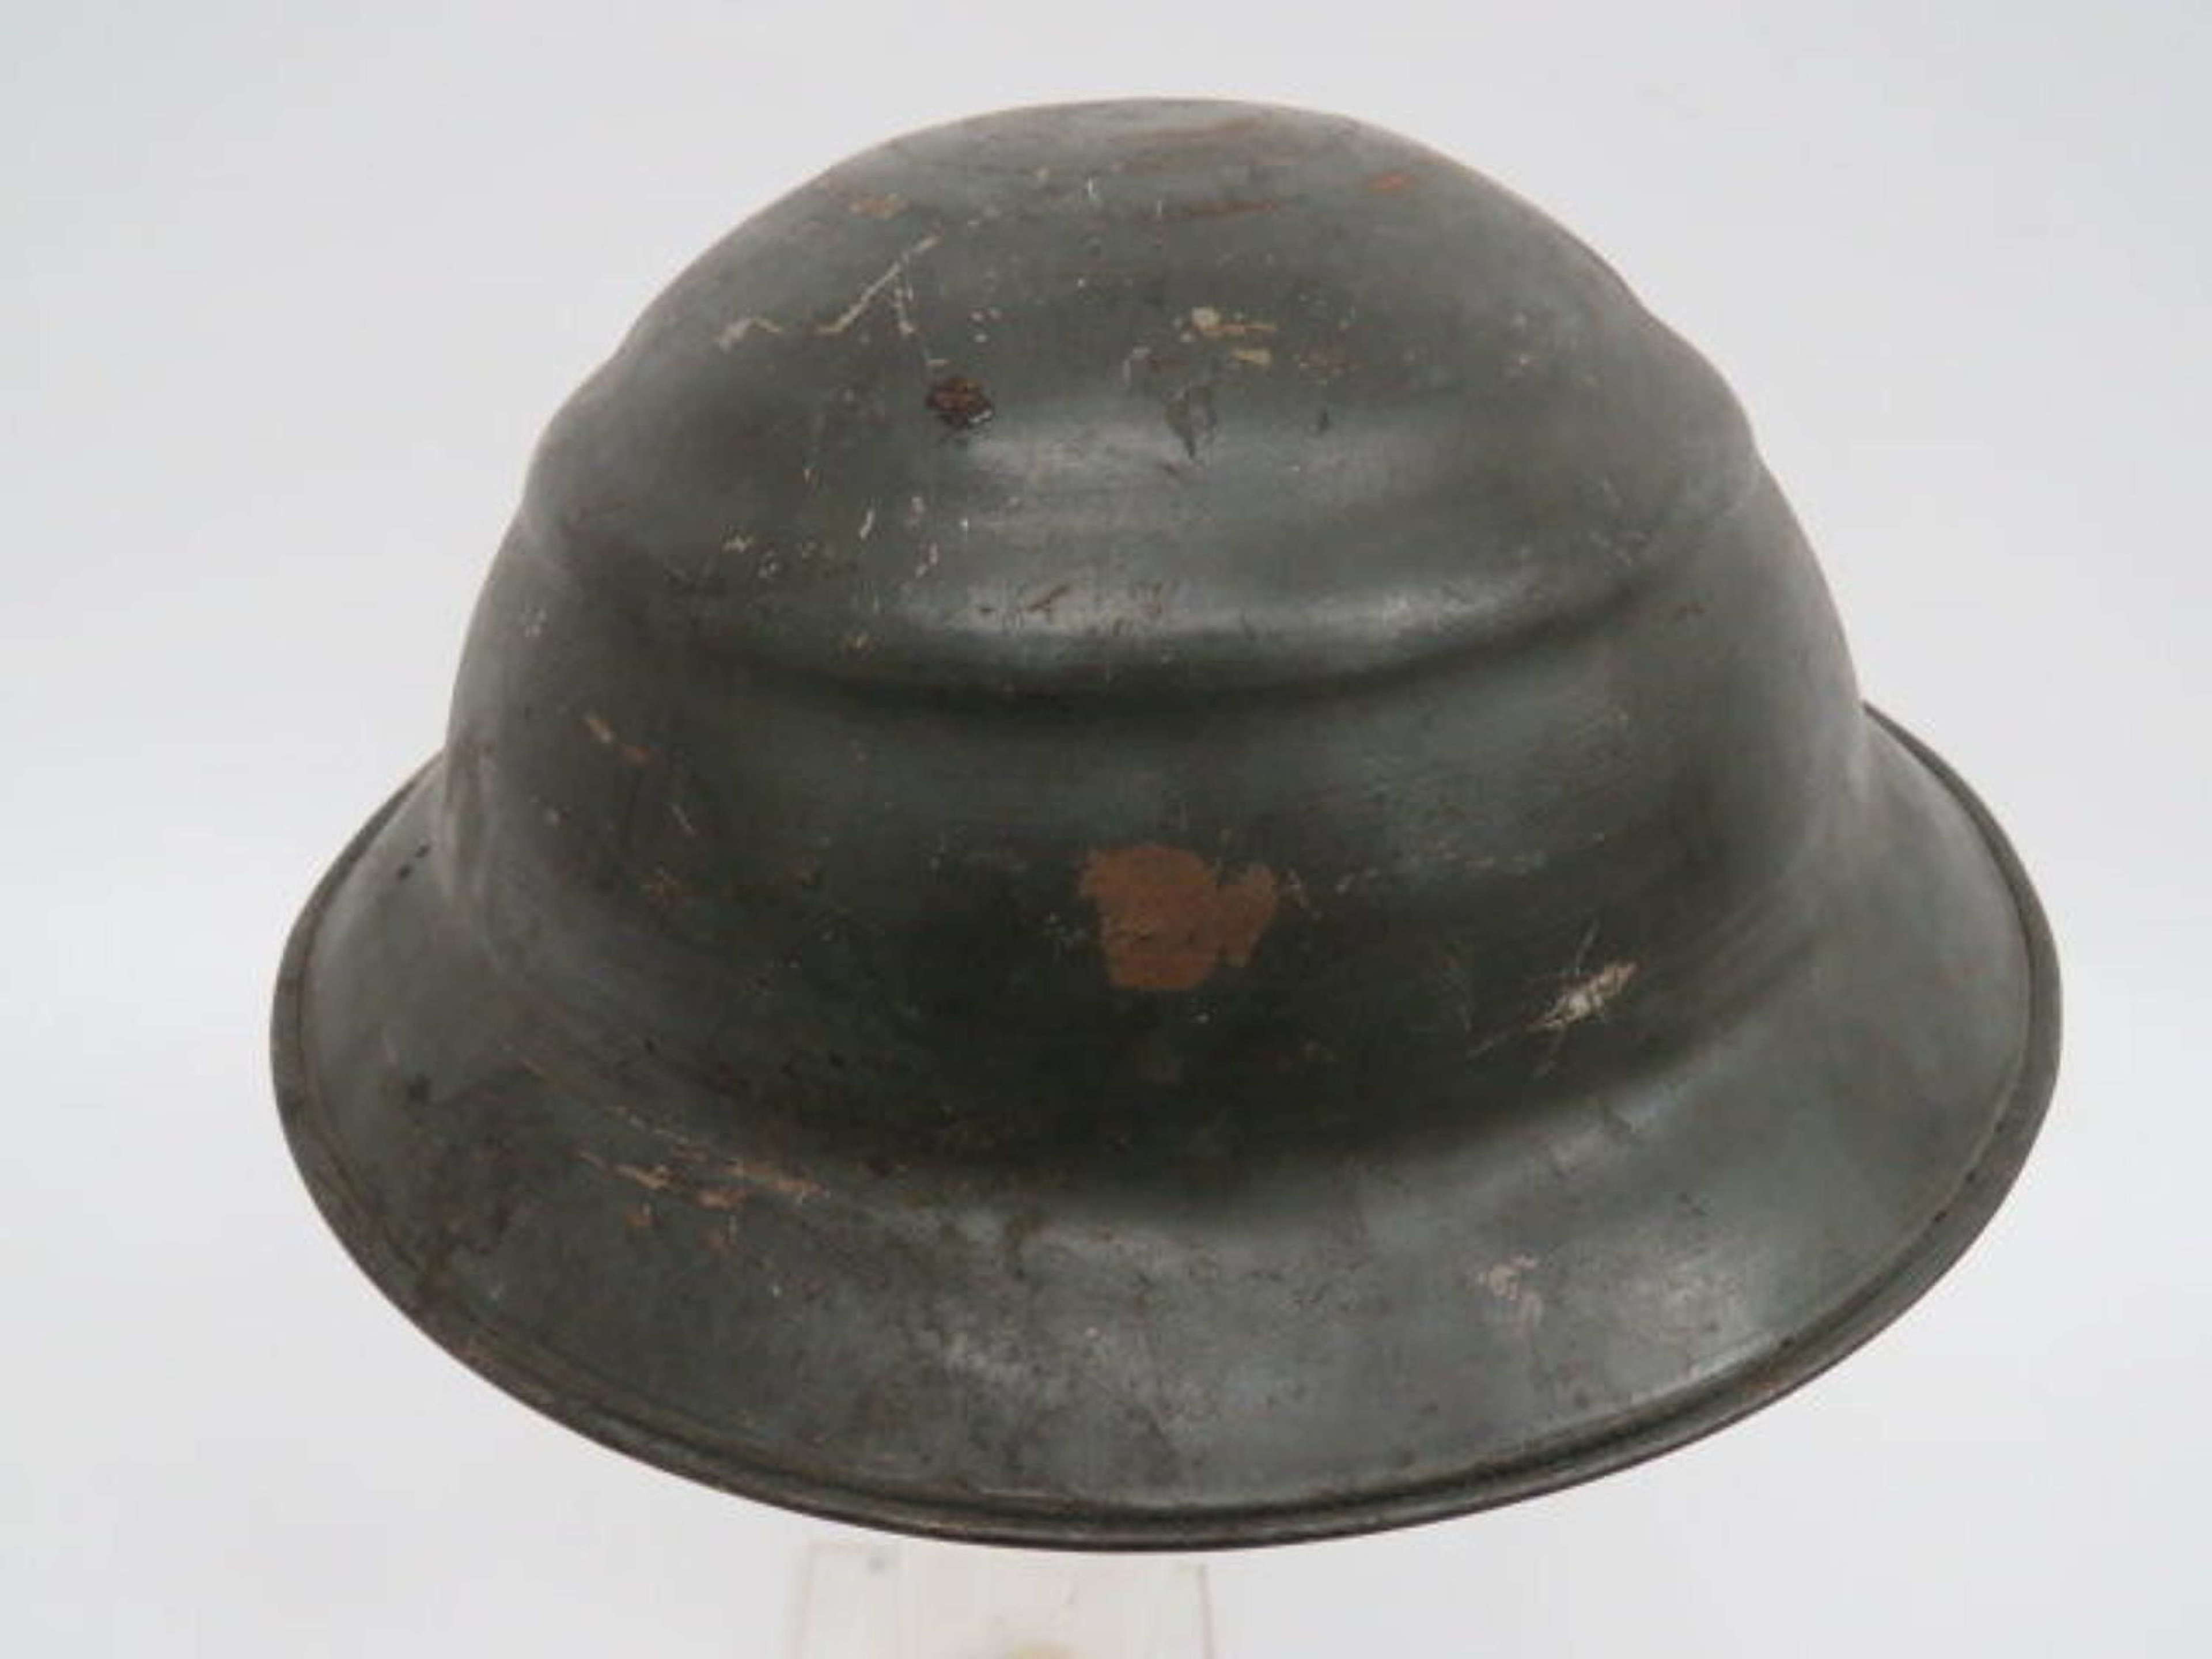 Scarce Civil Defence Private Purchase Ridged Crown Helmet